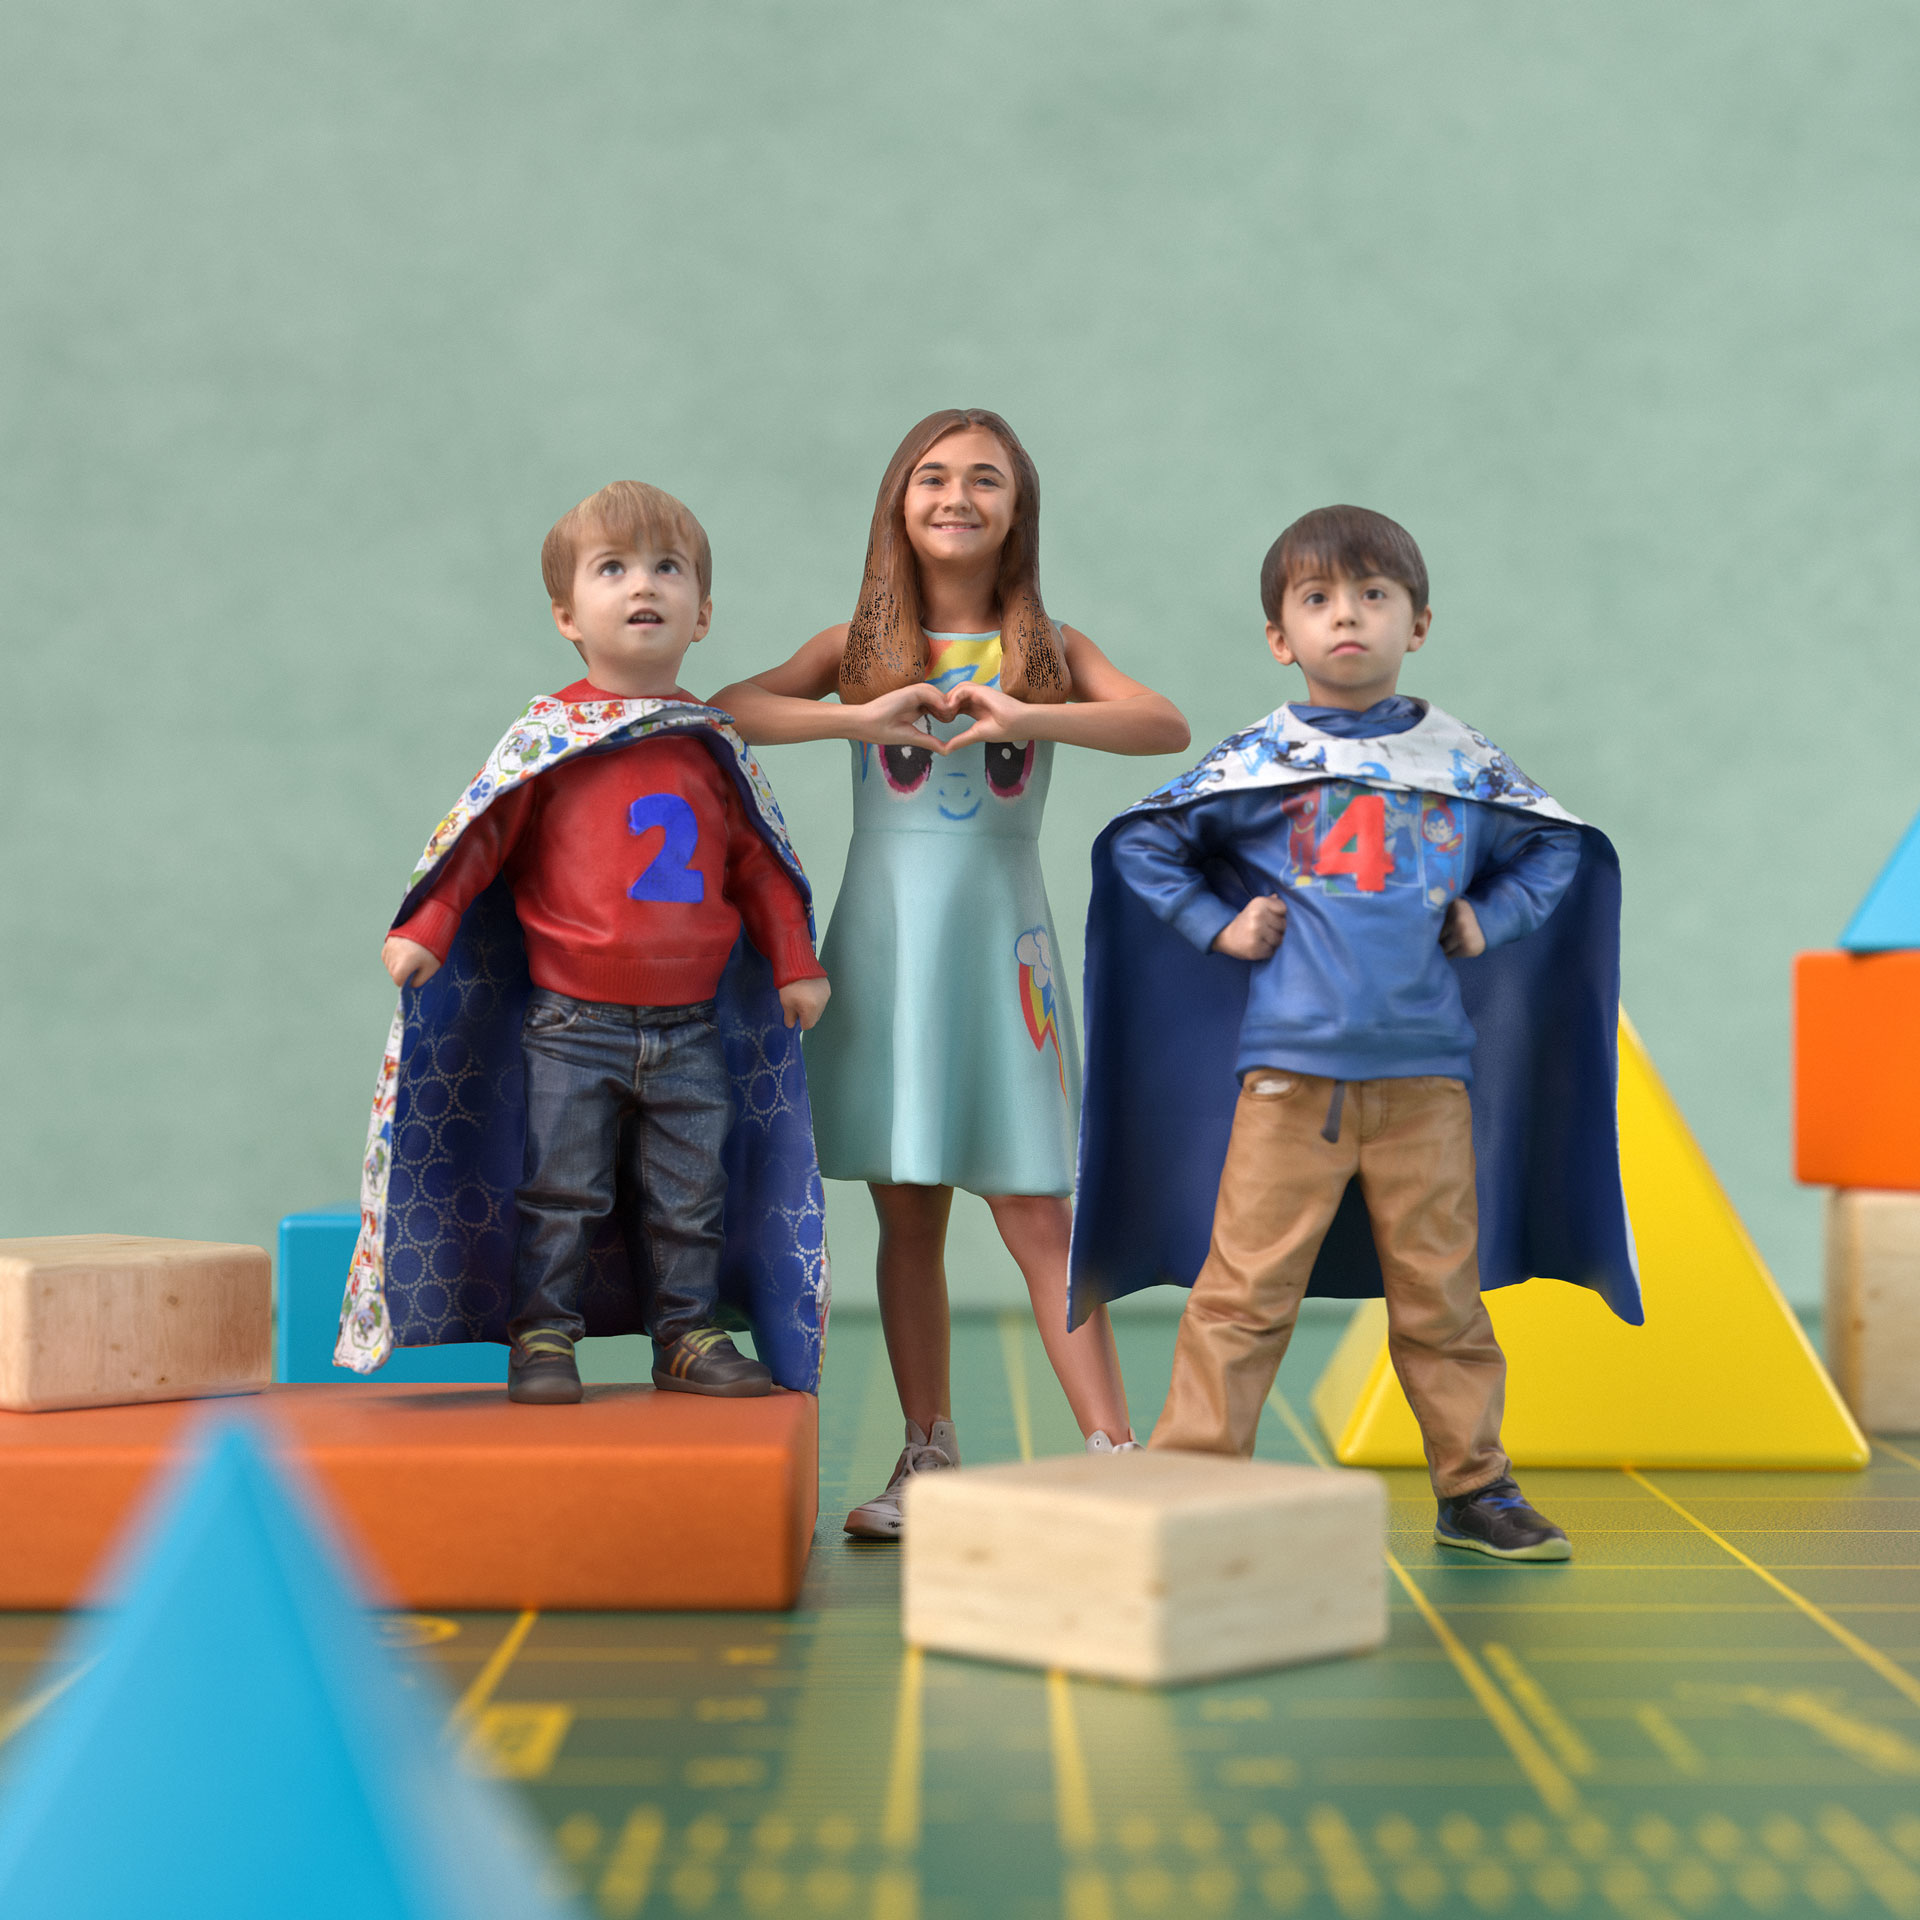 two brothers dressed as super heroes and their sister in a dress.